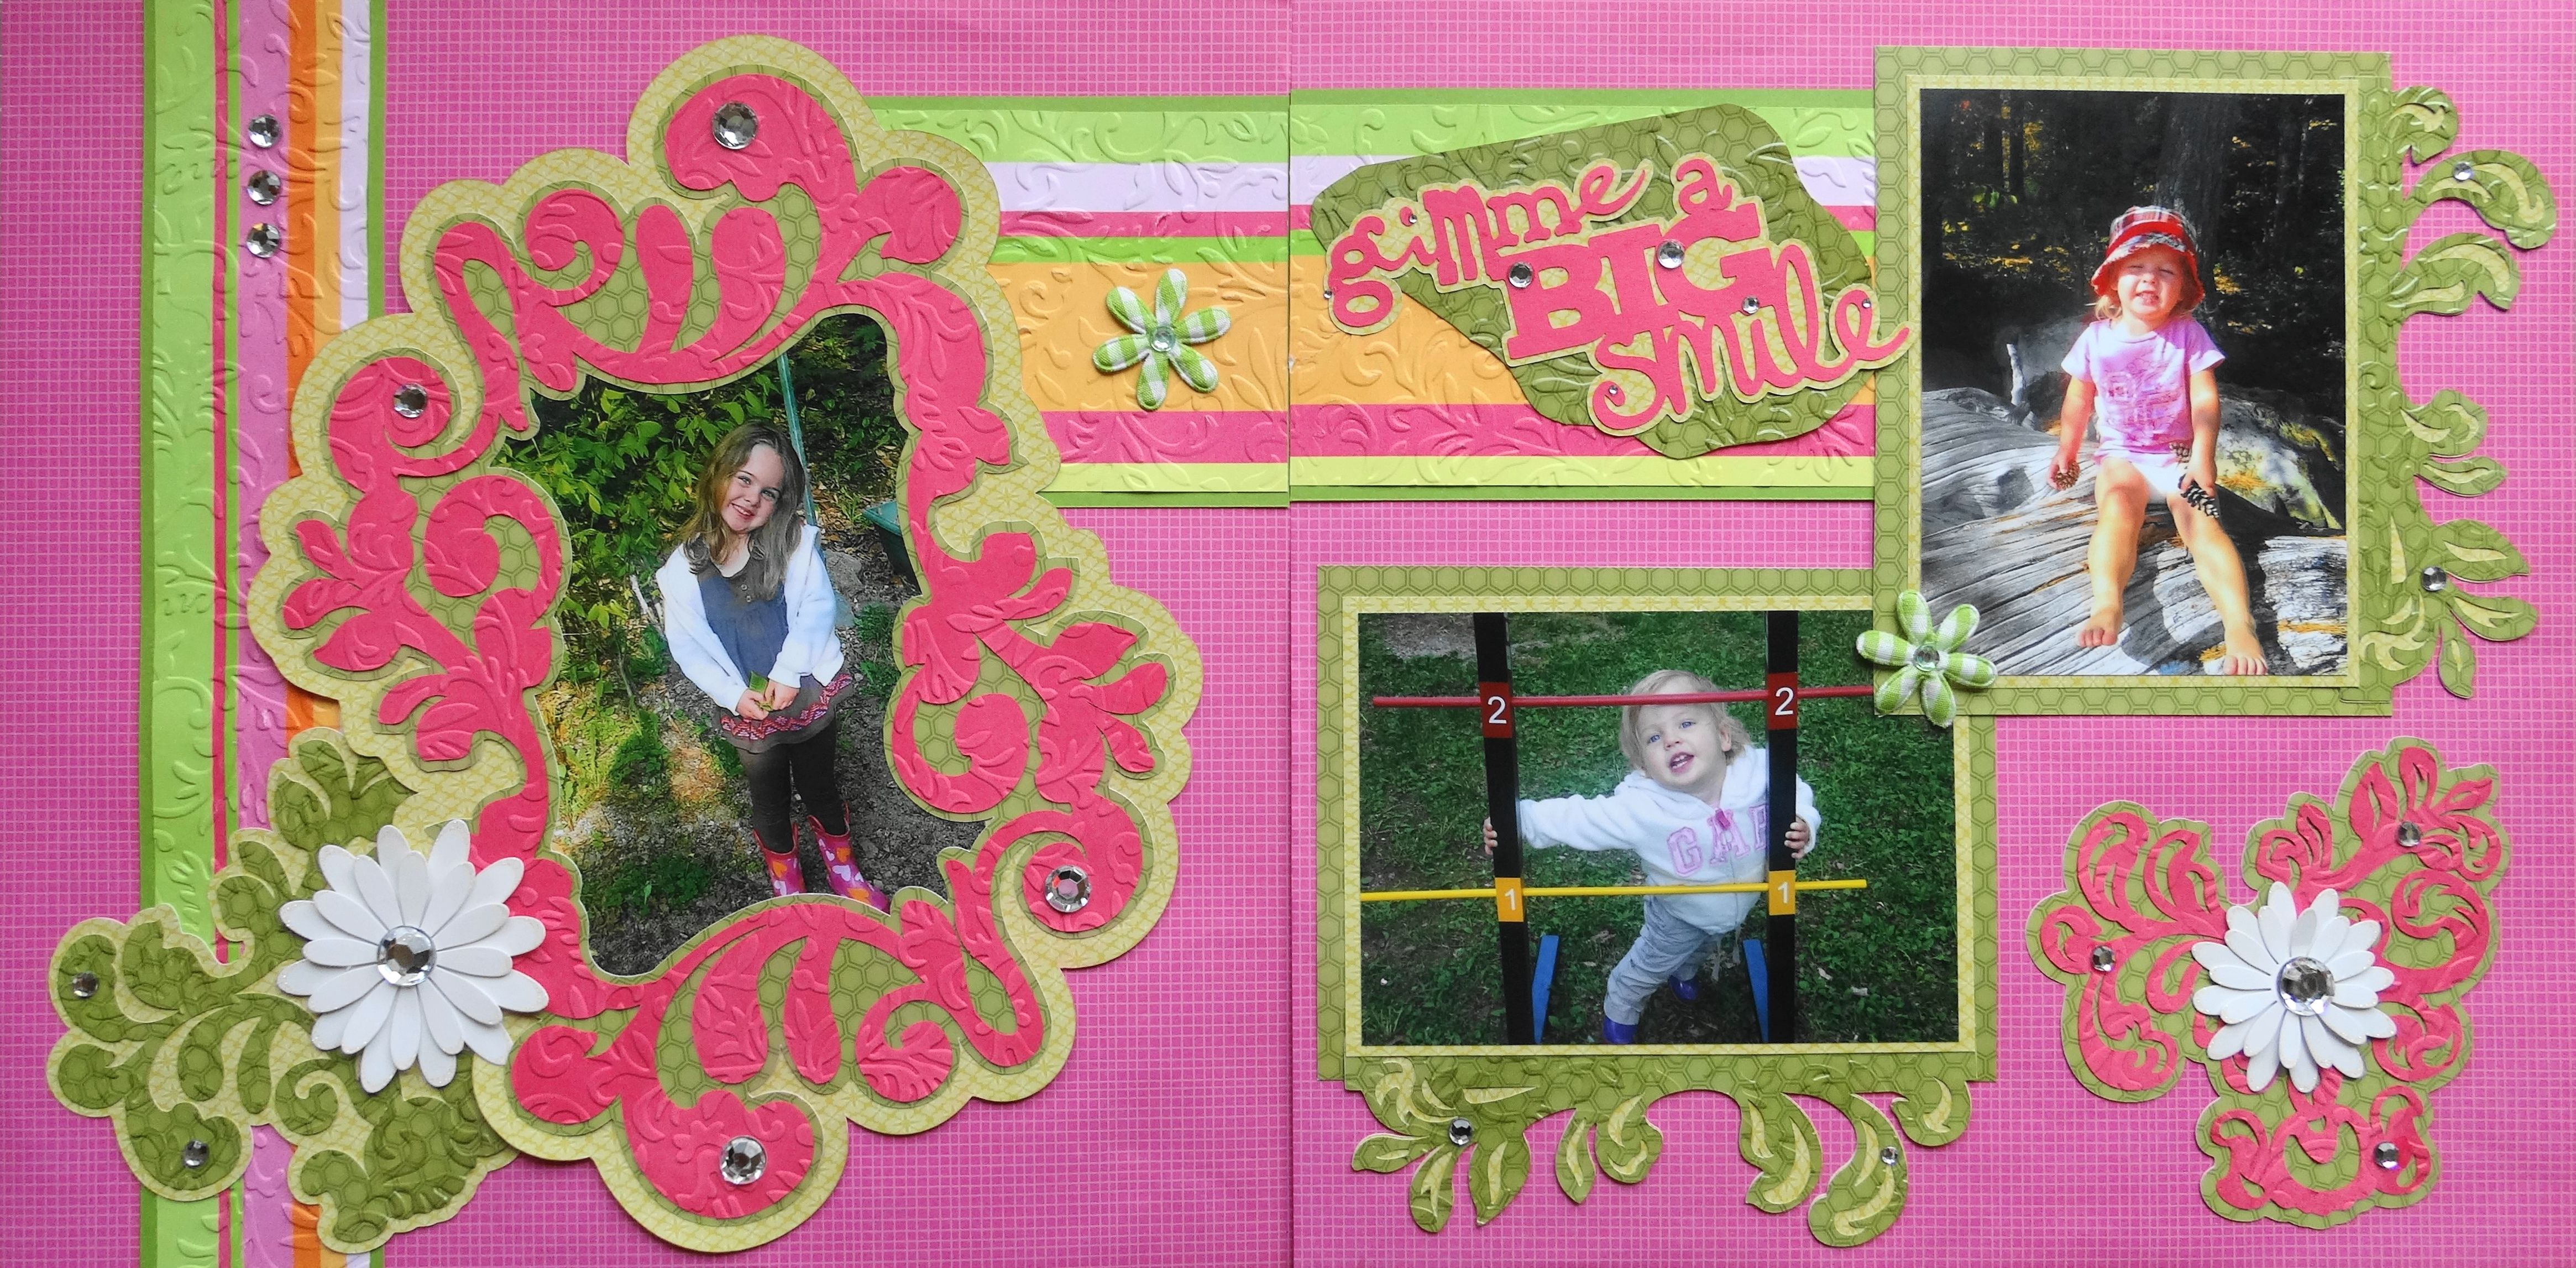 Family scrapbook ideas on pinterest - Scrapbook Page Summer Days At The Park 2 Page Child Layout With Flowers From Girl Scrapbook Ideaschildren Scrapbookfamily